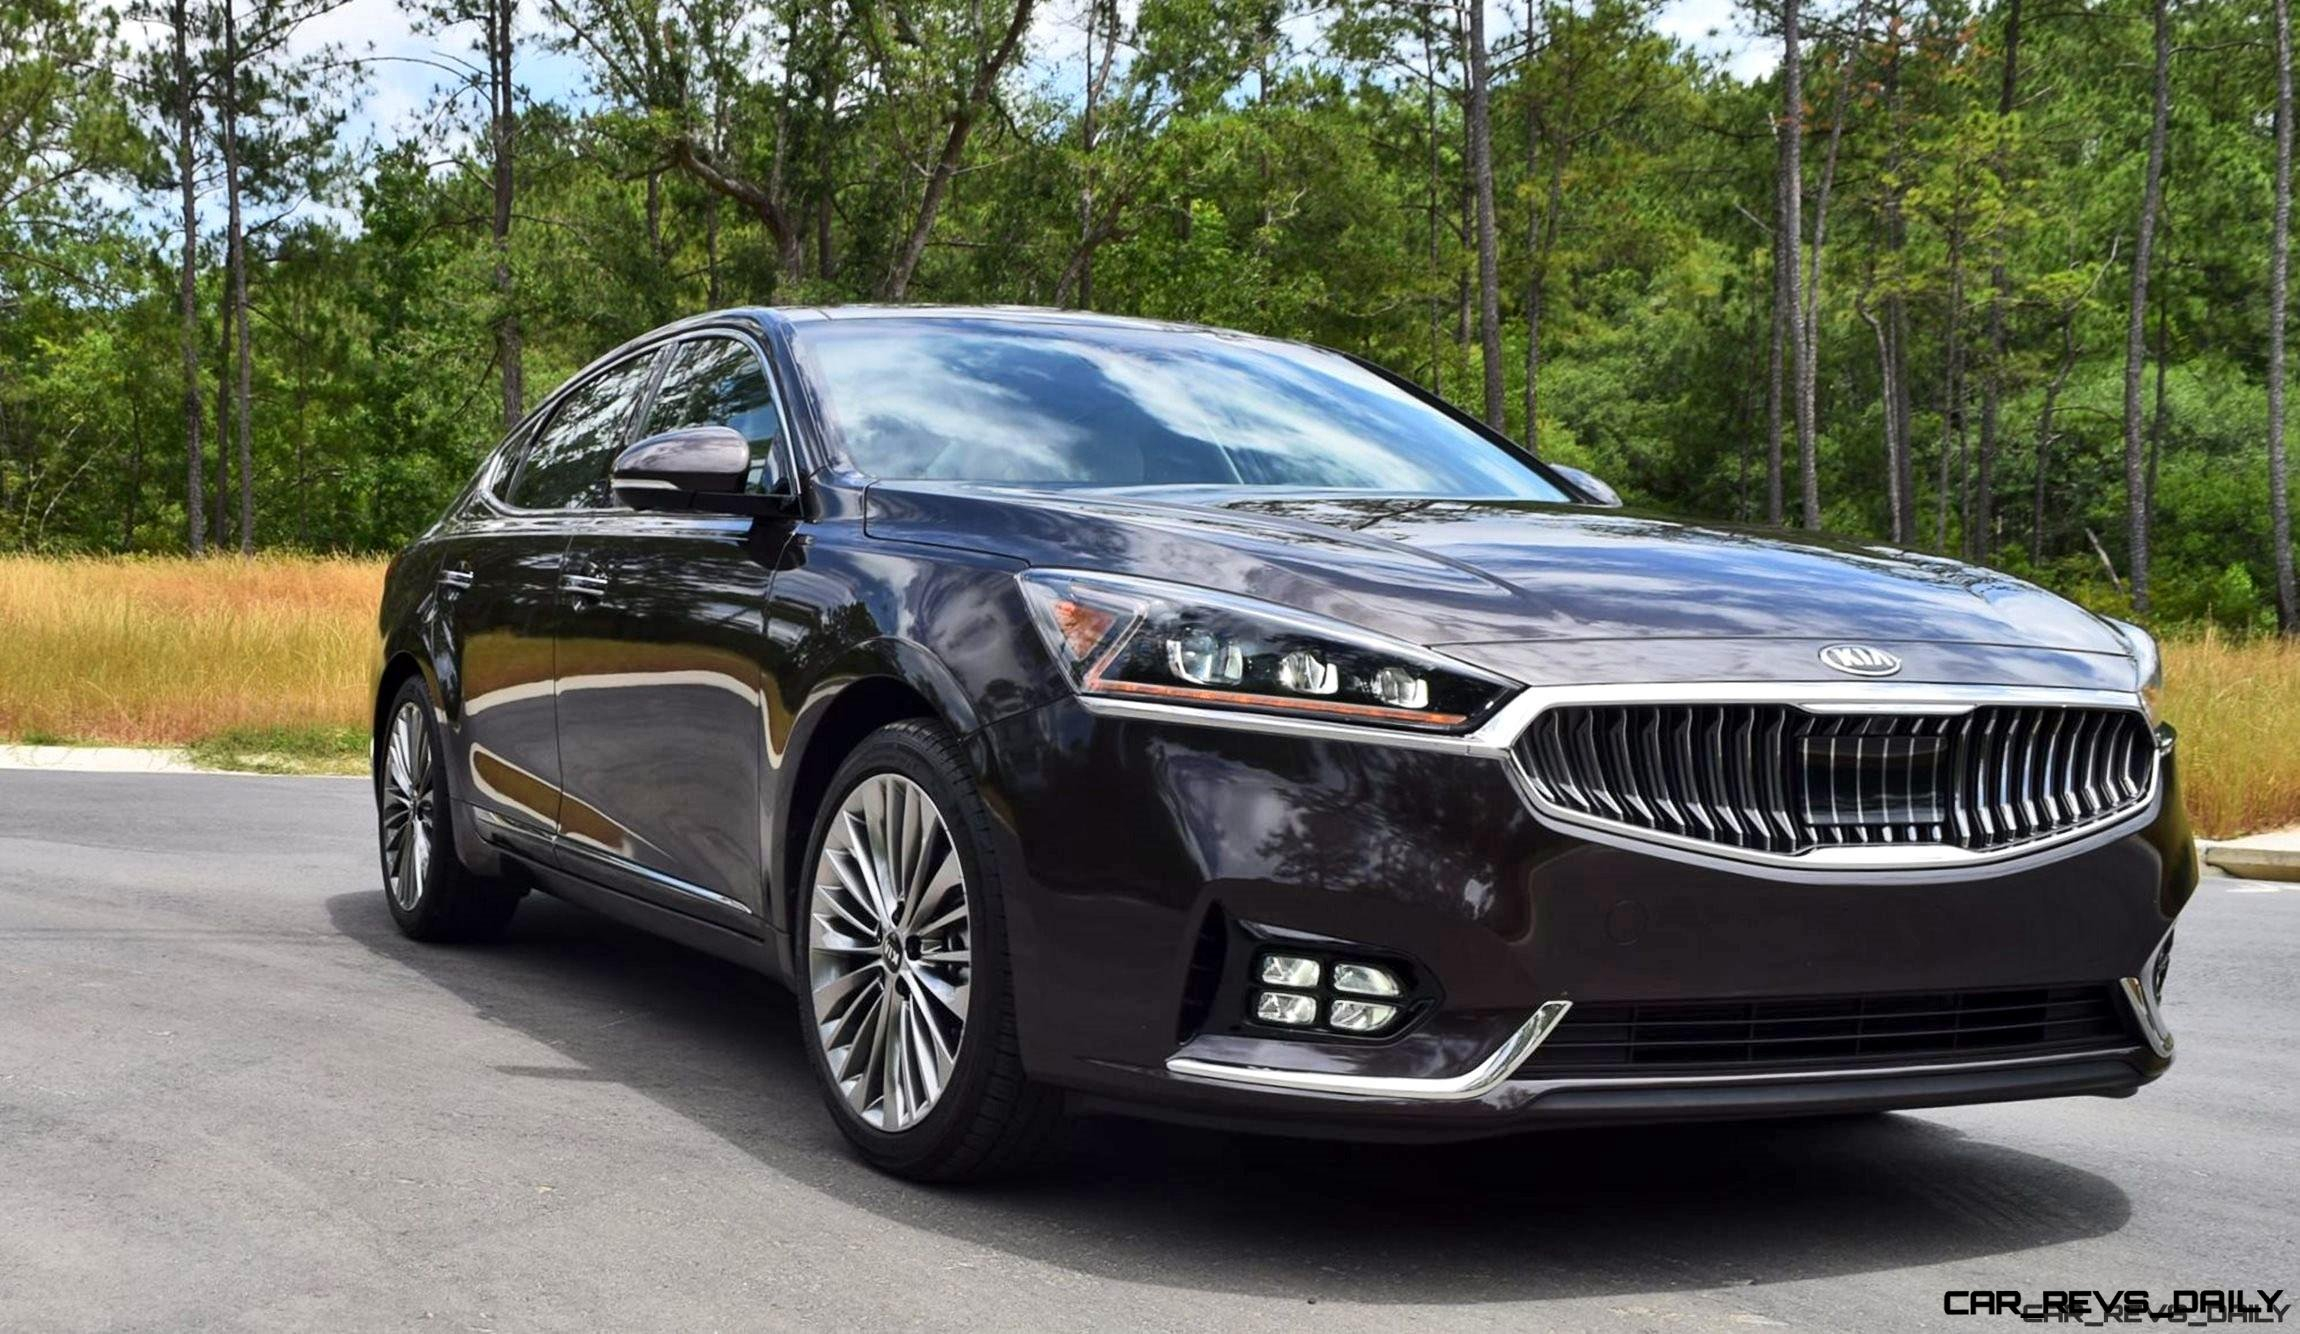 2017 Kia Cadenza Limited - Road Test Review + 2 Videos » Car - Kia Cadenza 2022 Test Drive Color Options, Redesign